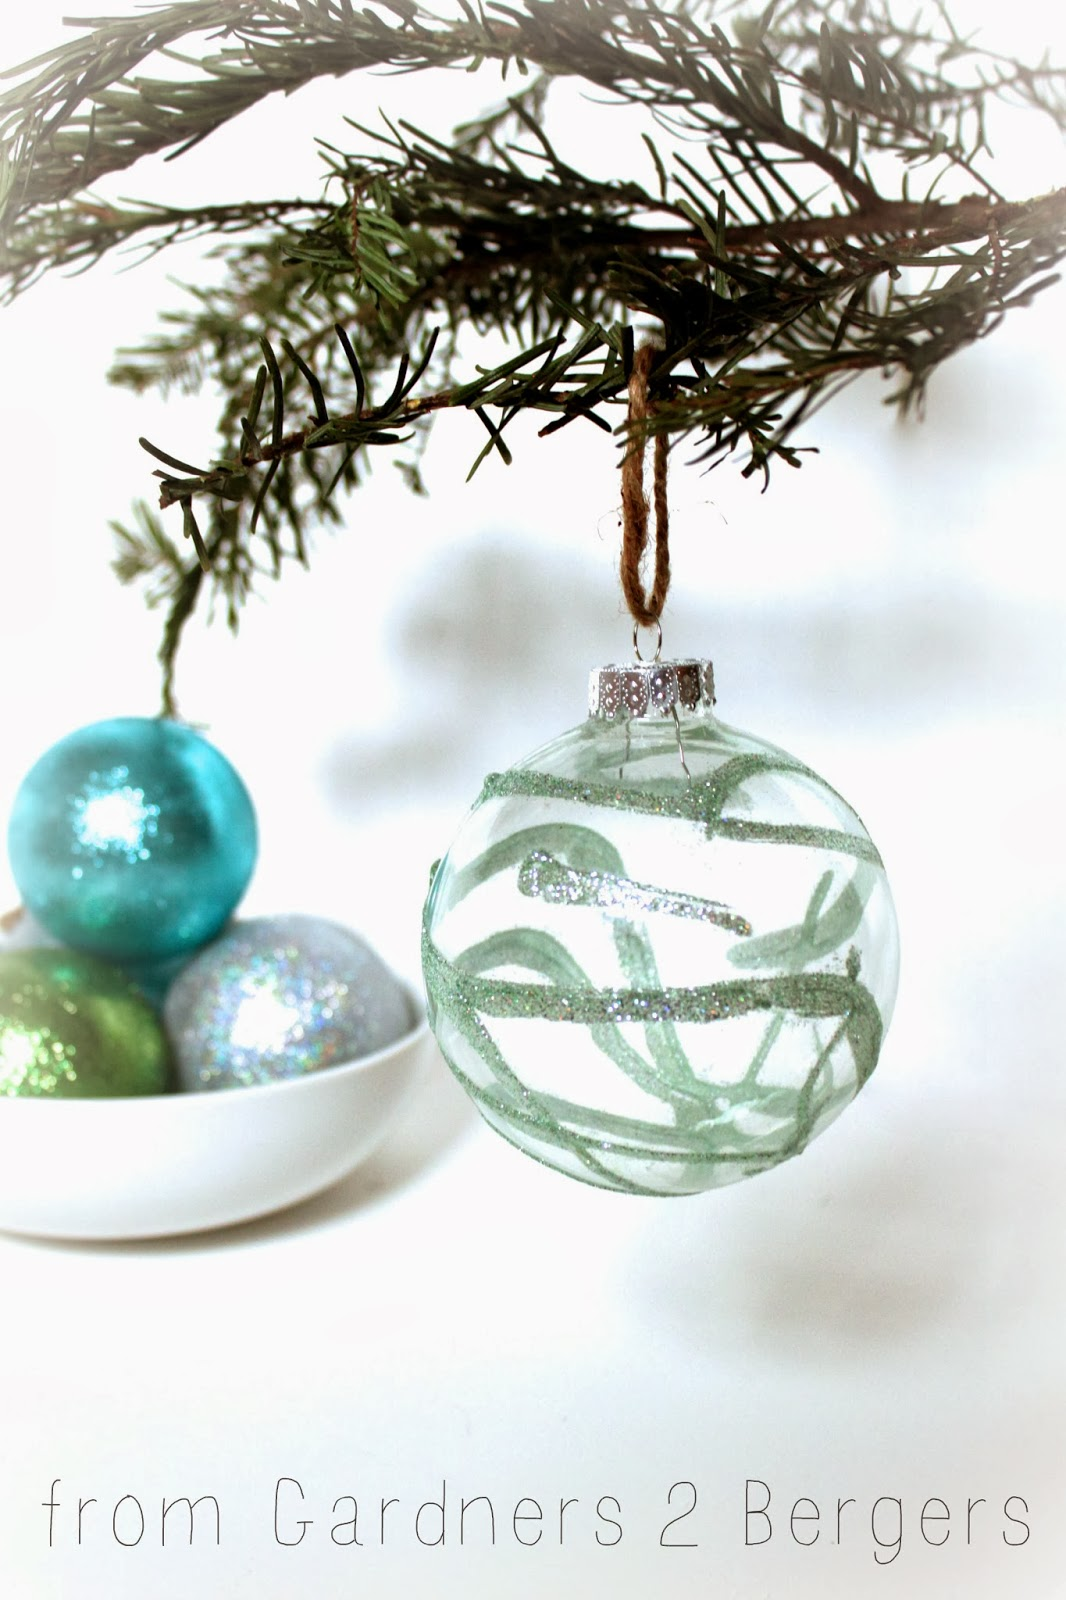 Glue for glass ornaments - I Hope You Have A Chance To Create Your Own Glass Glitter Ornaments It S A Fun And Easy Project With A Whole Lot Of Shine You Can See Them On My Tree